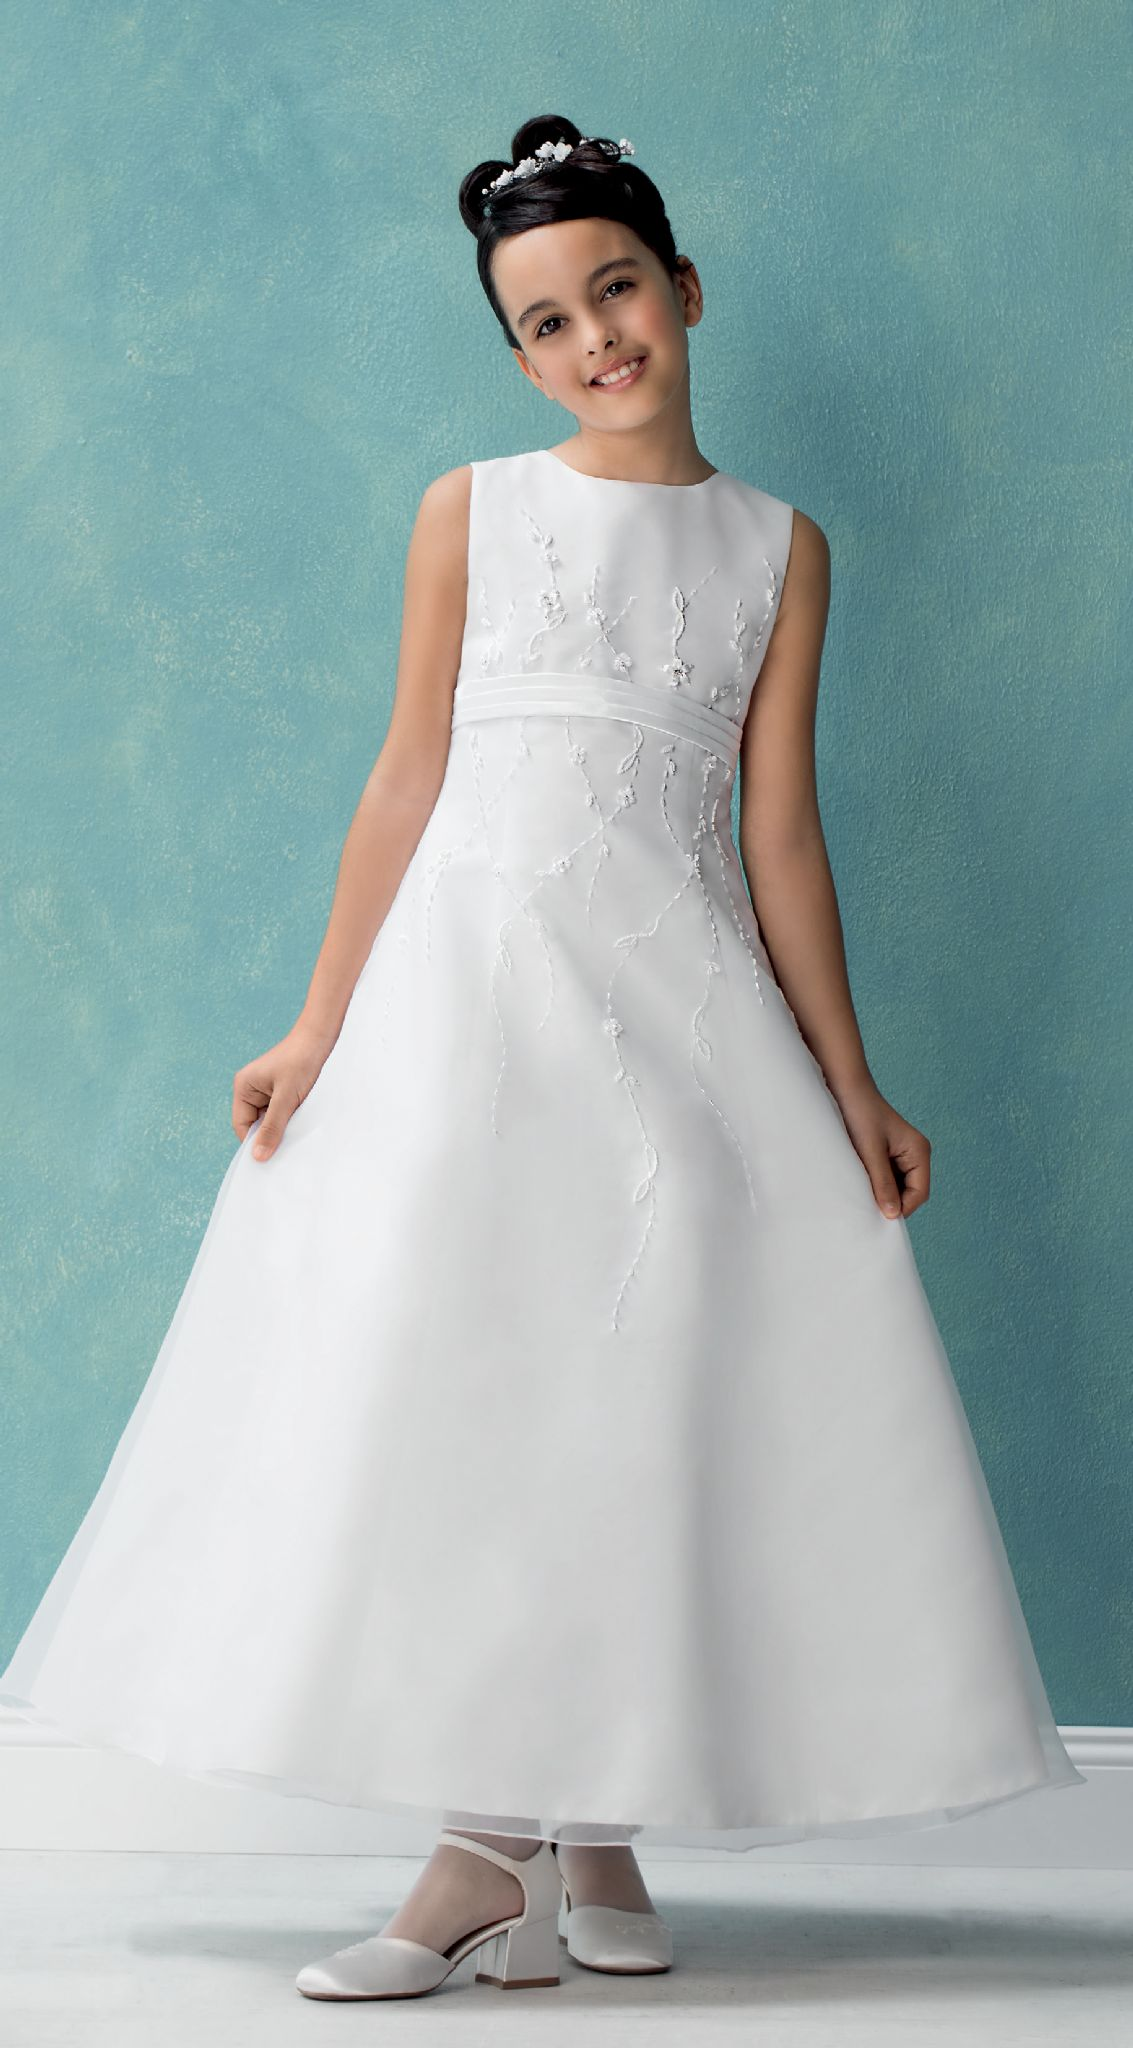 Plus Size Communion Dresses for Girls - Communion Dresses ...